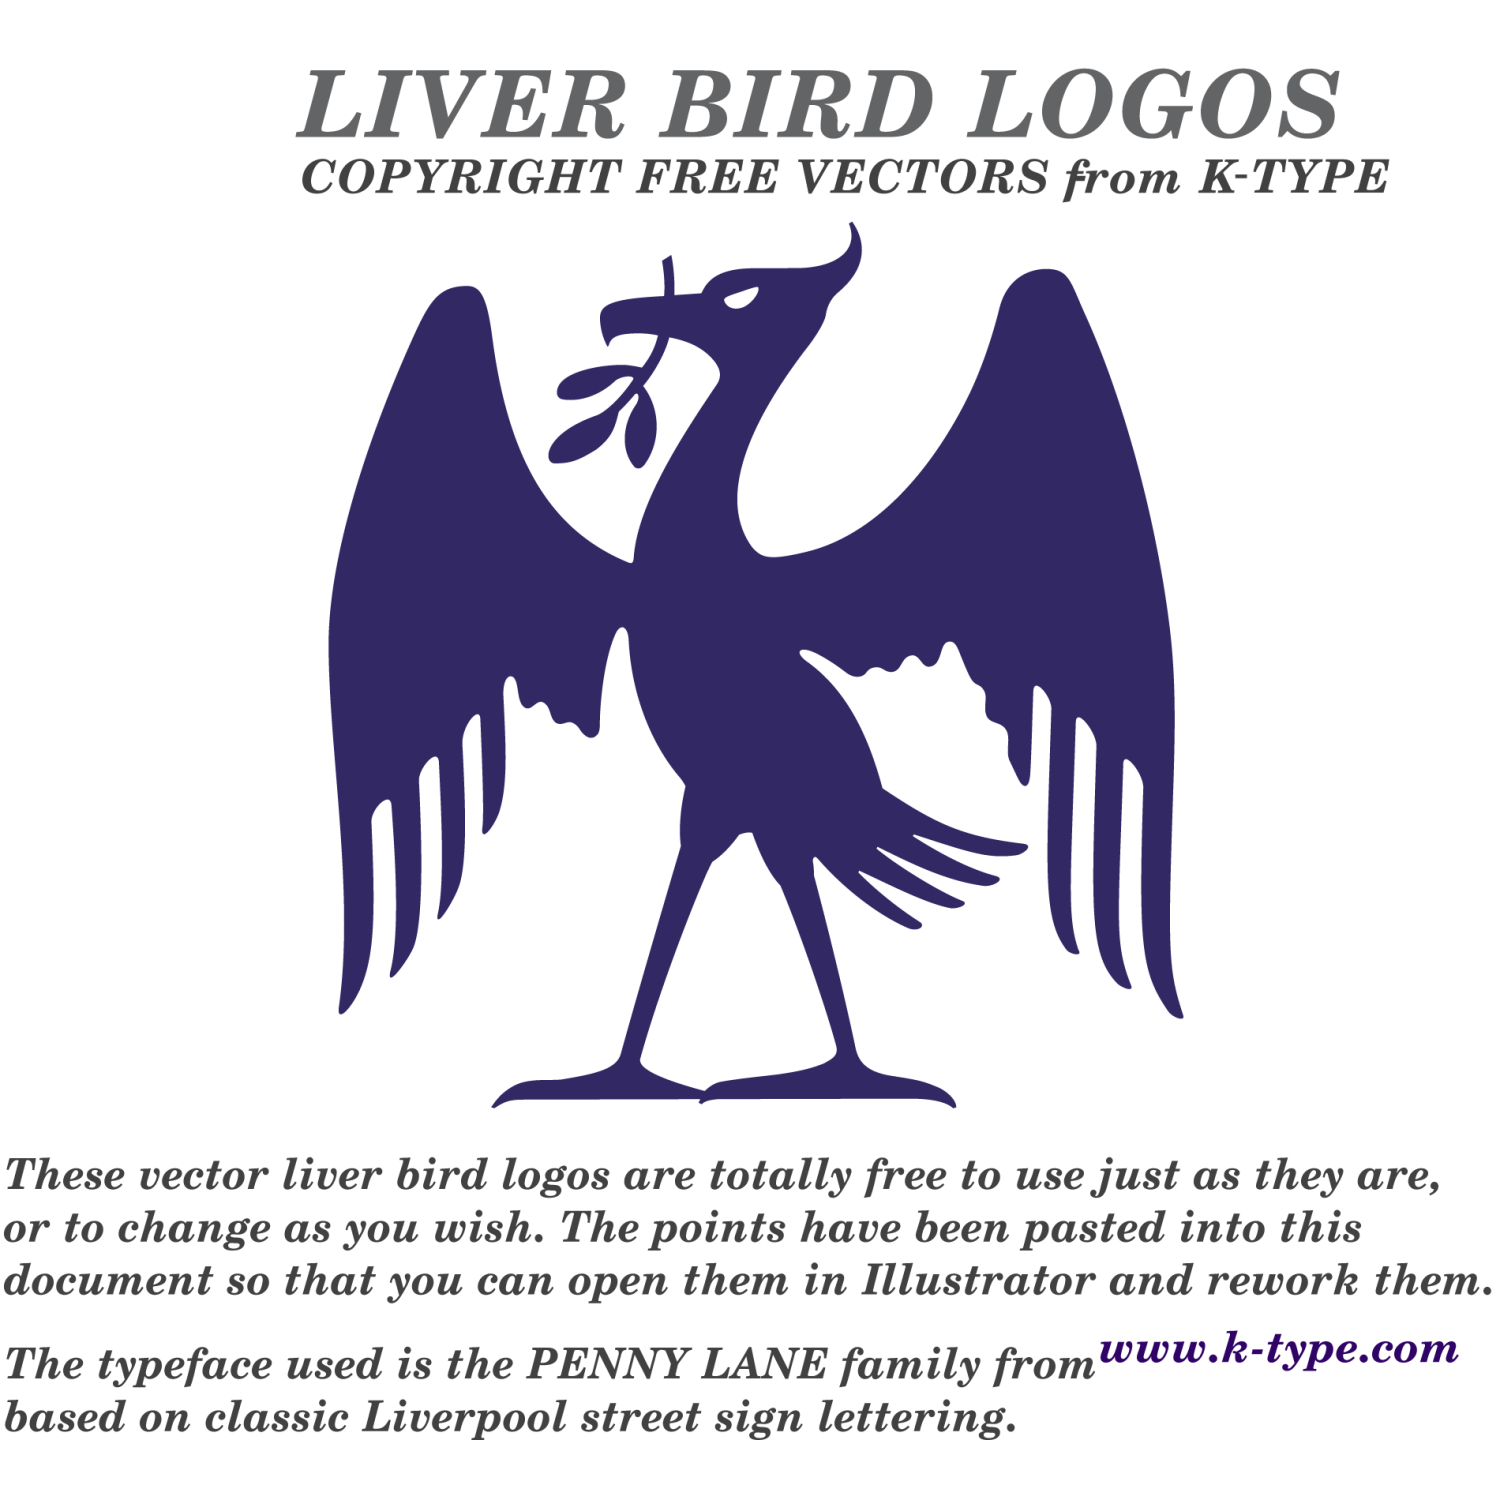 Liverpool, Liver Bird, City of Liverpool, Made in Liverpool, Made on Merseyside, Liver Bird logo, Liverpool emblem